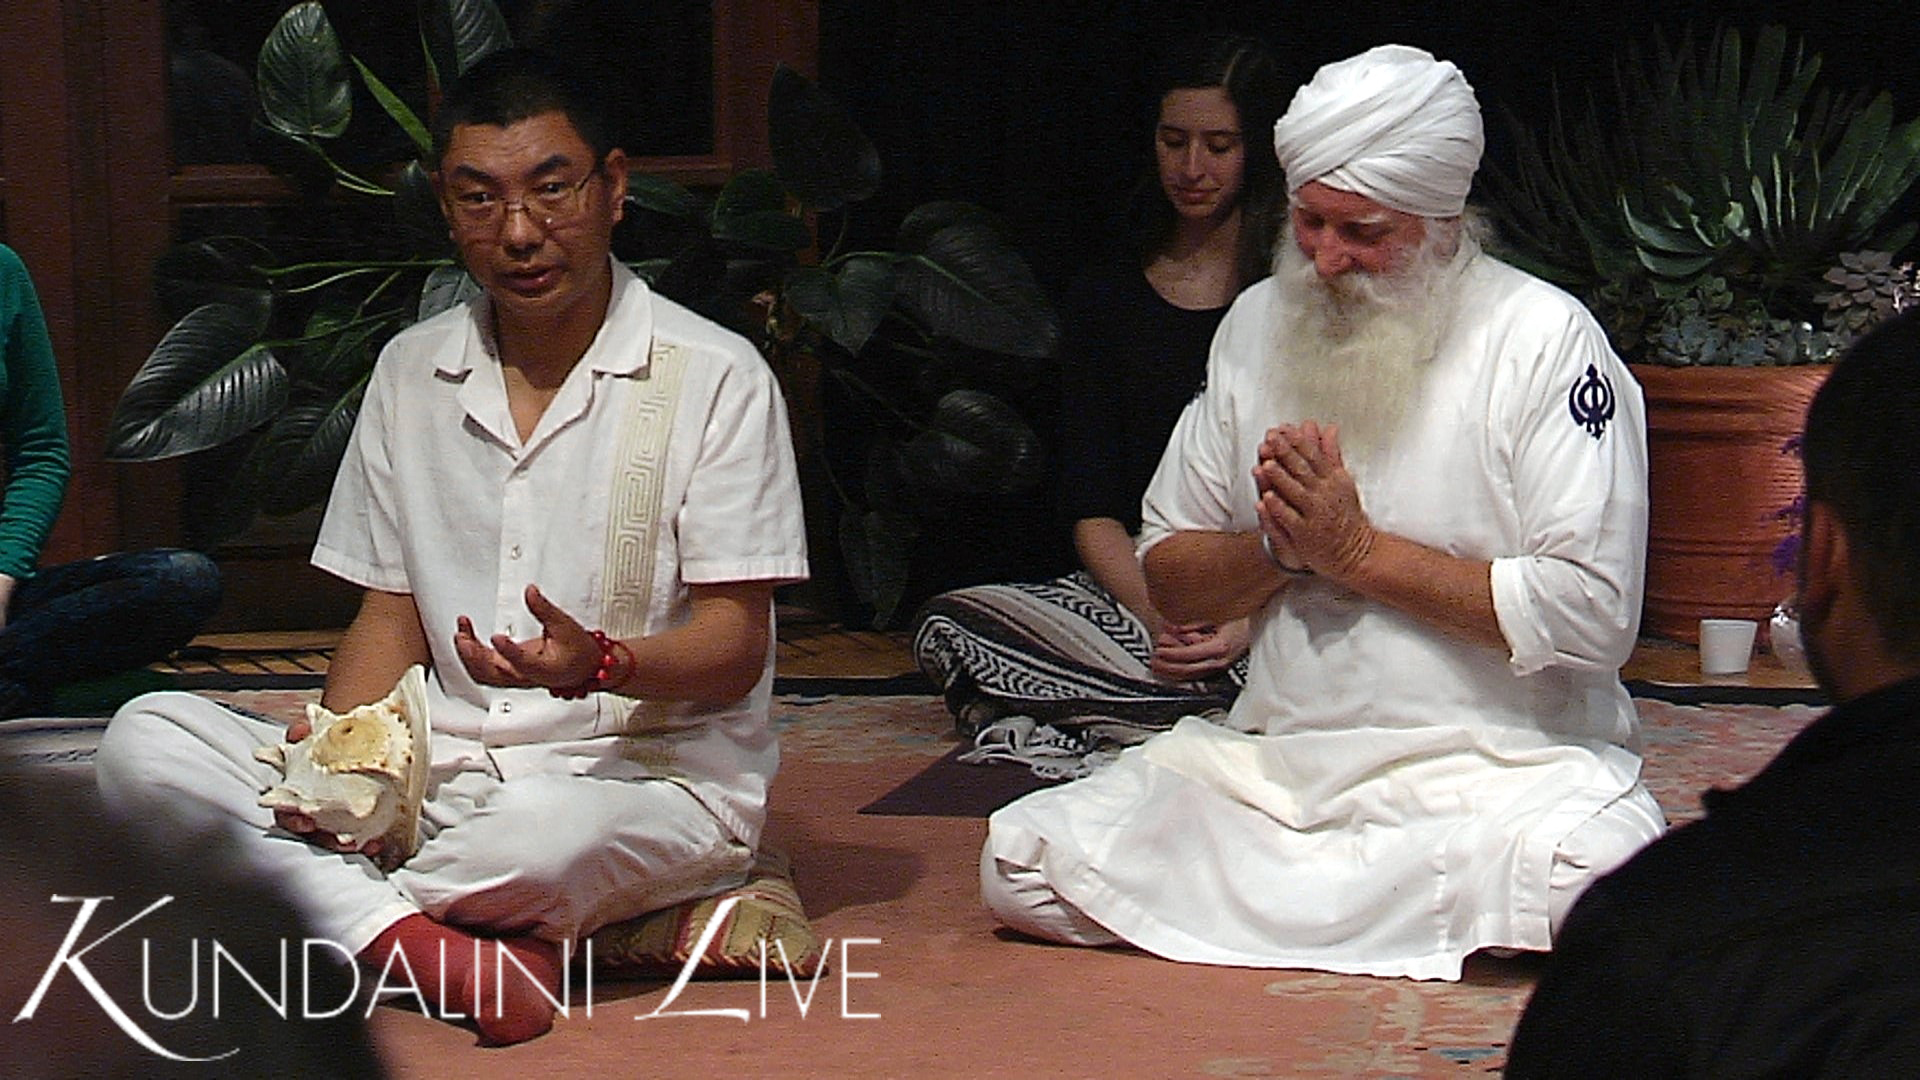 wahe guru bowing prayer with rinpoche during naad sound-healing yoga